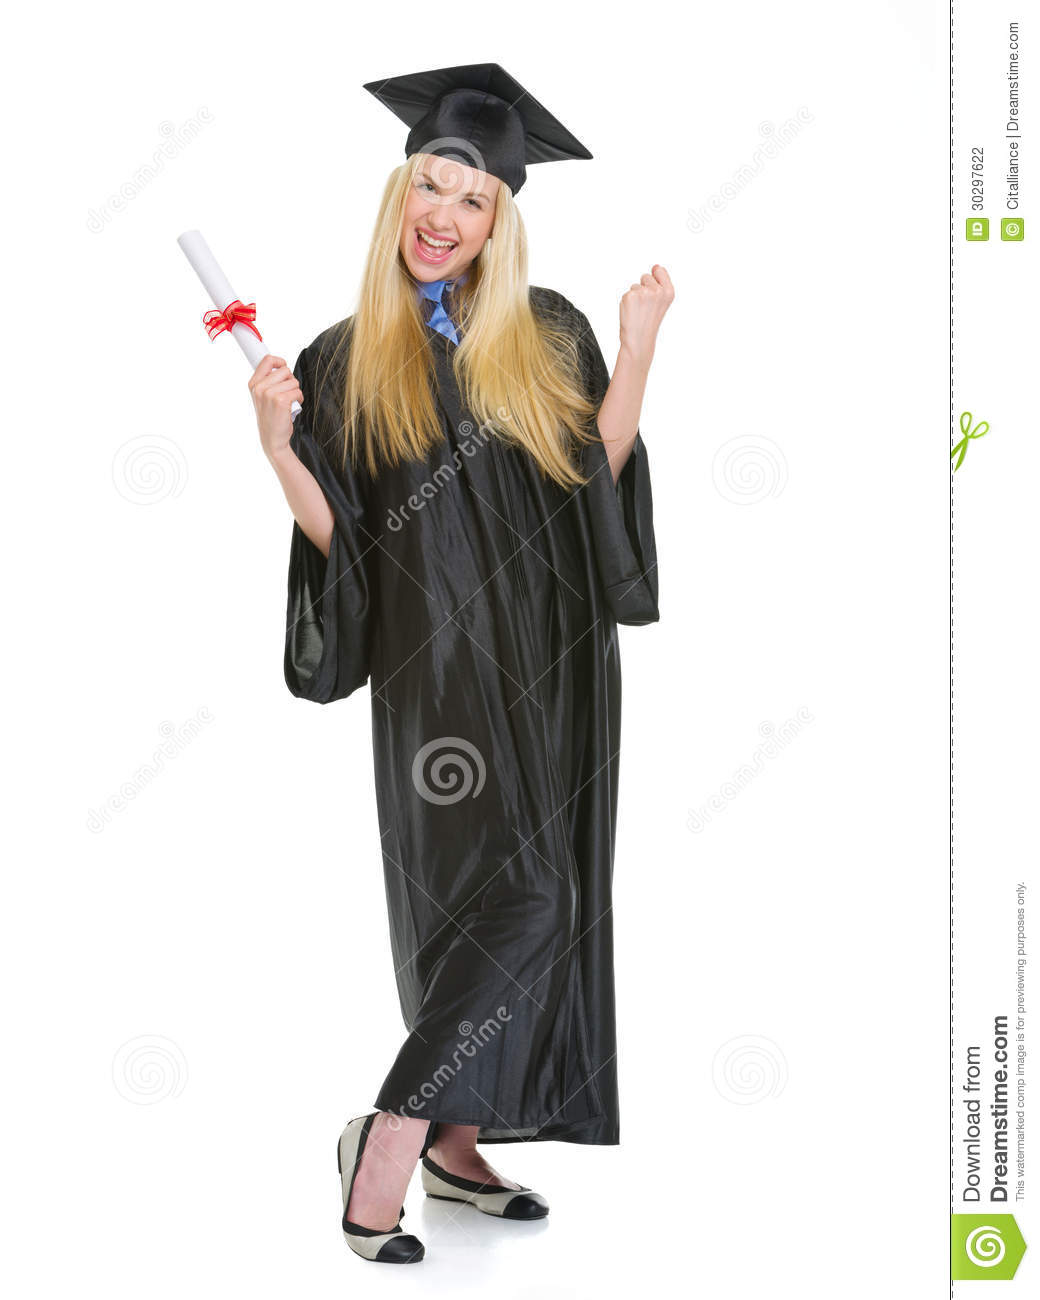 Happy Young Woman In Graduation Gown With Diploma Stock Photo ...